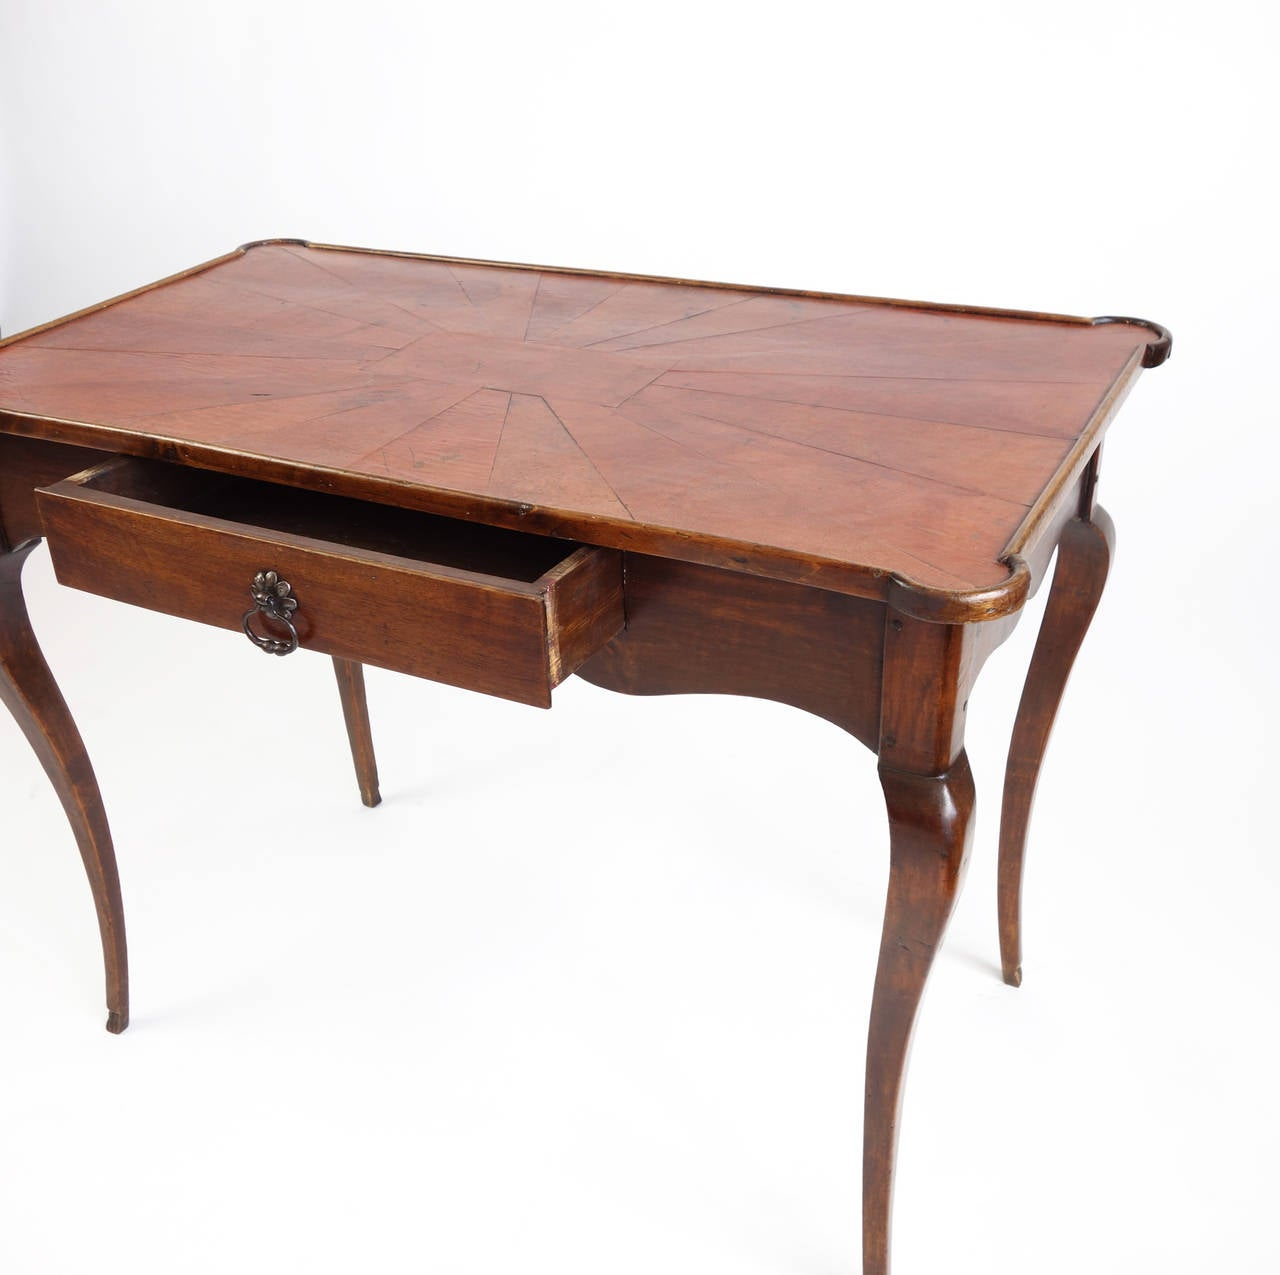 19th century french leather topped bureau plat at 1stdibs for Bureau french